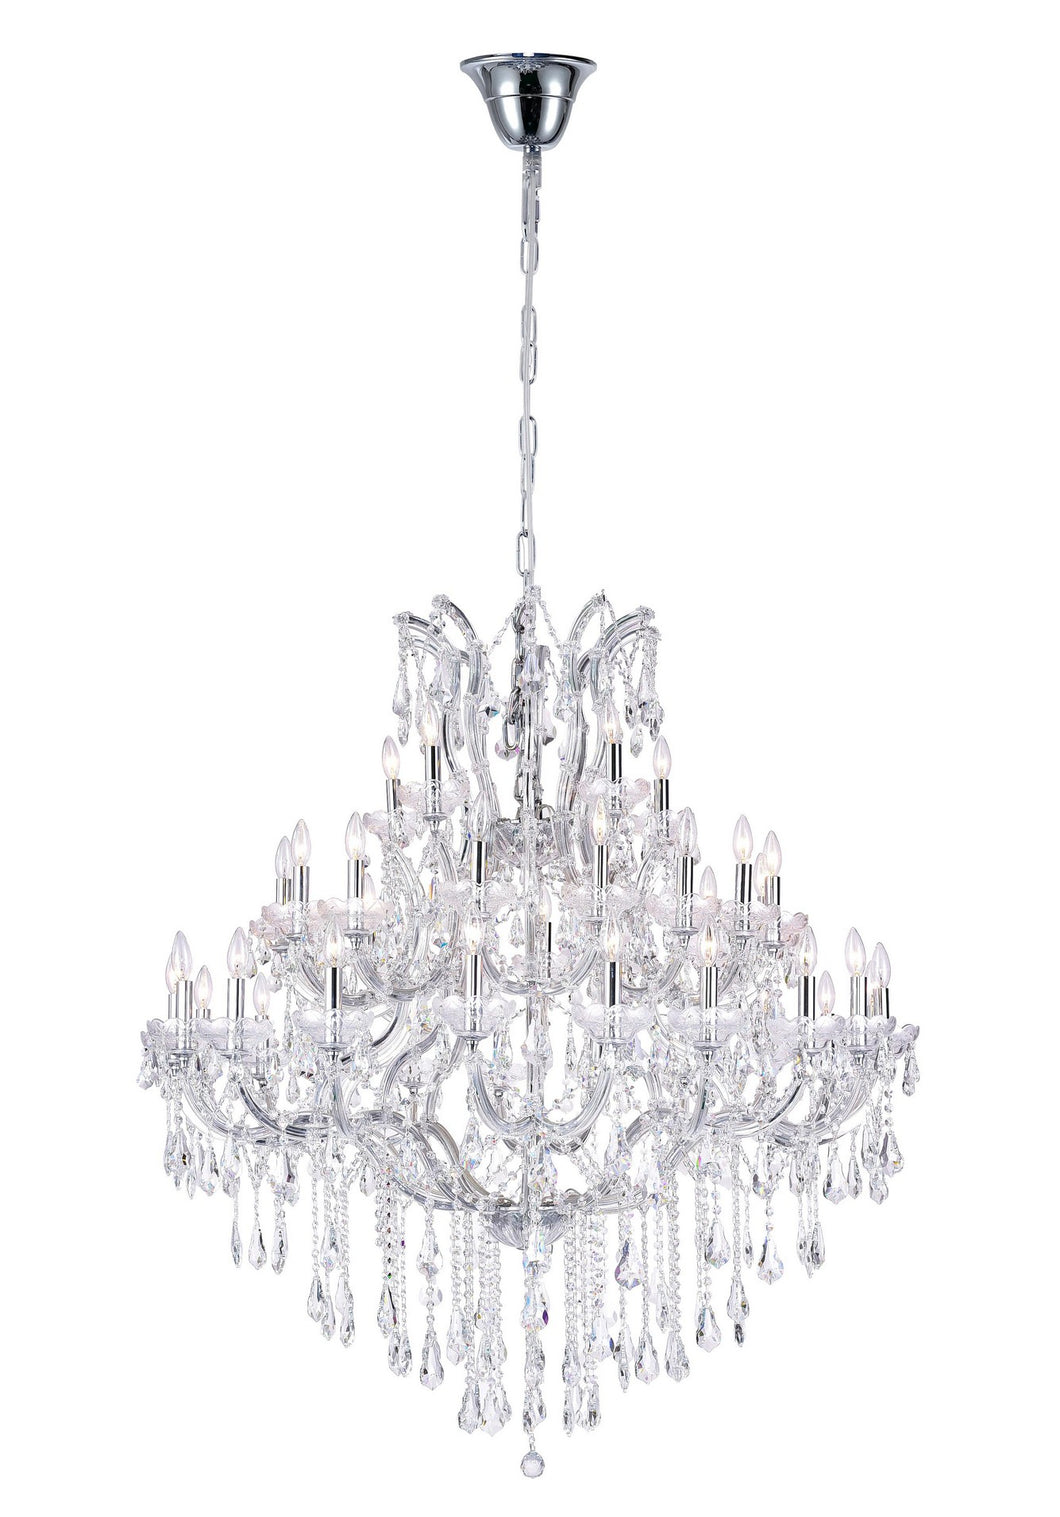 33 LIGHT UP CHANDELIER WITH CHROME FINISH - Dreamart Gallery